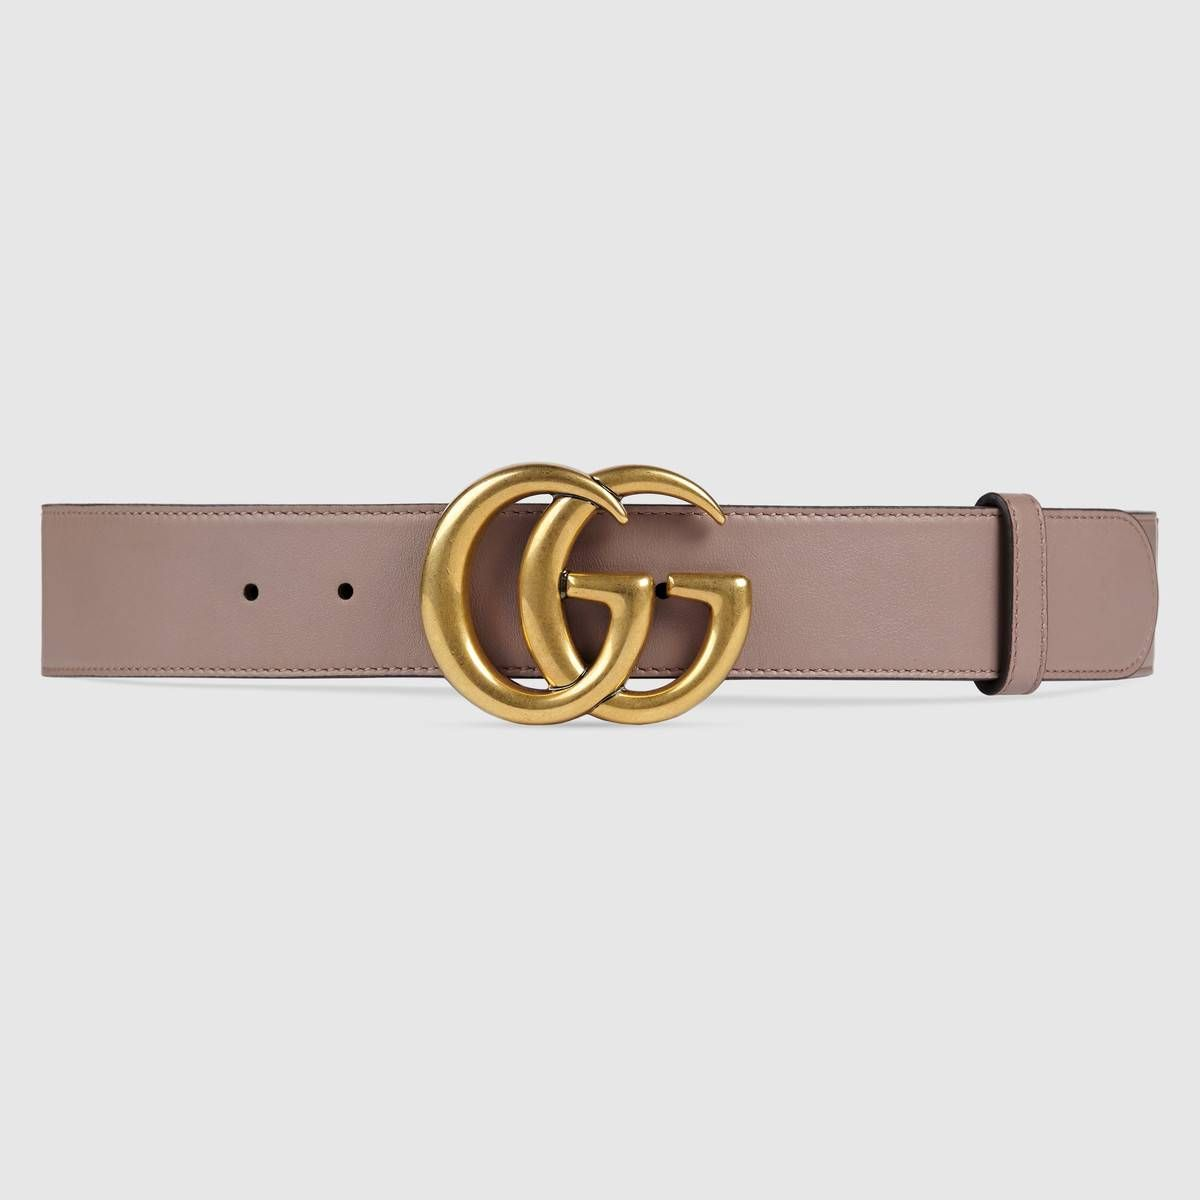 e8a02bb0ecf57 Leather belt with Double G buckle - Gucci Women's Belts 400593AP00T5729  dusty pink